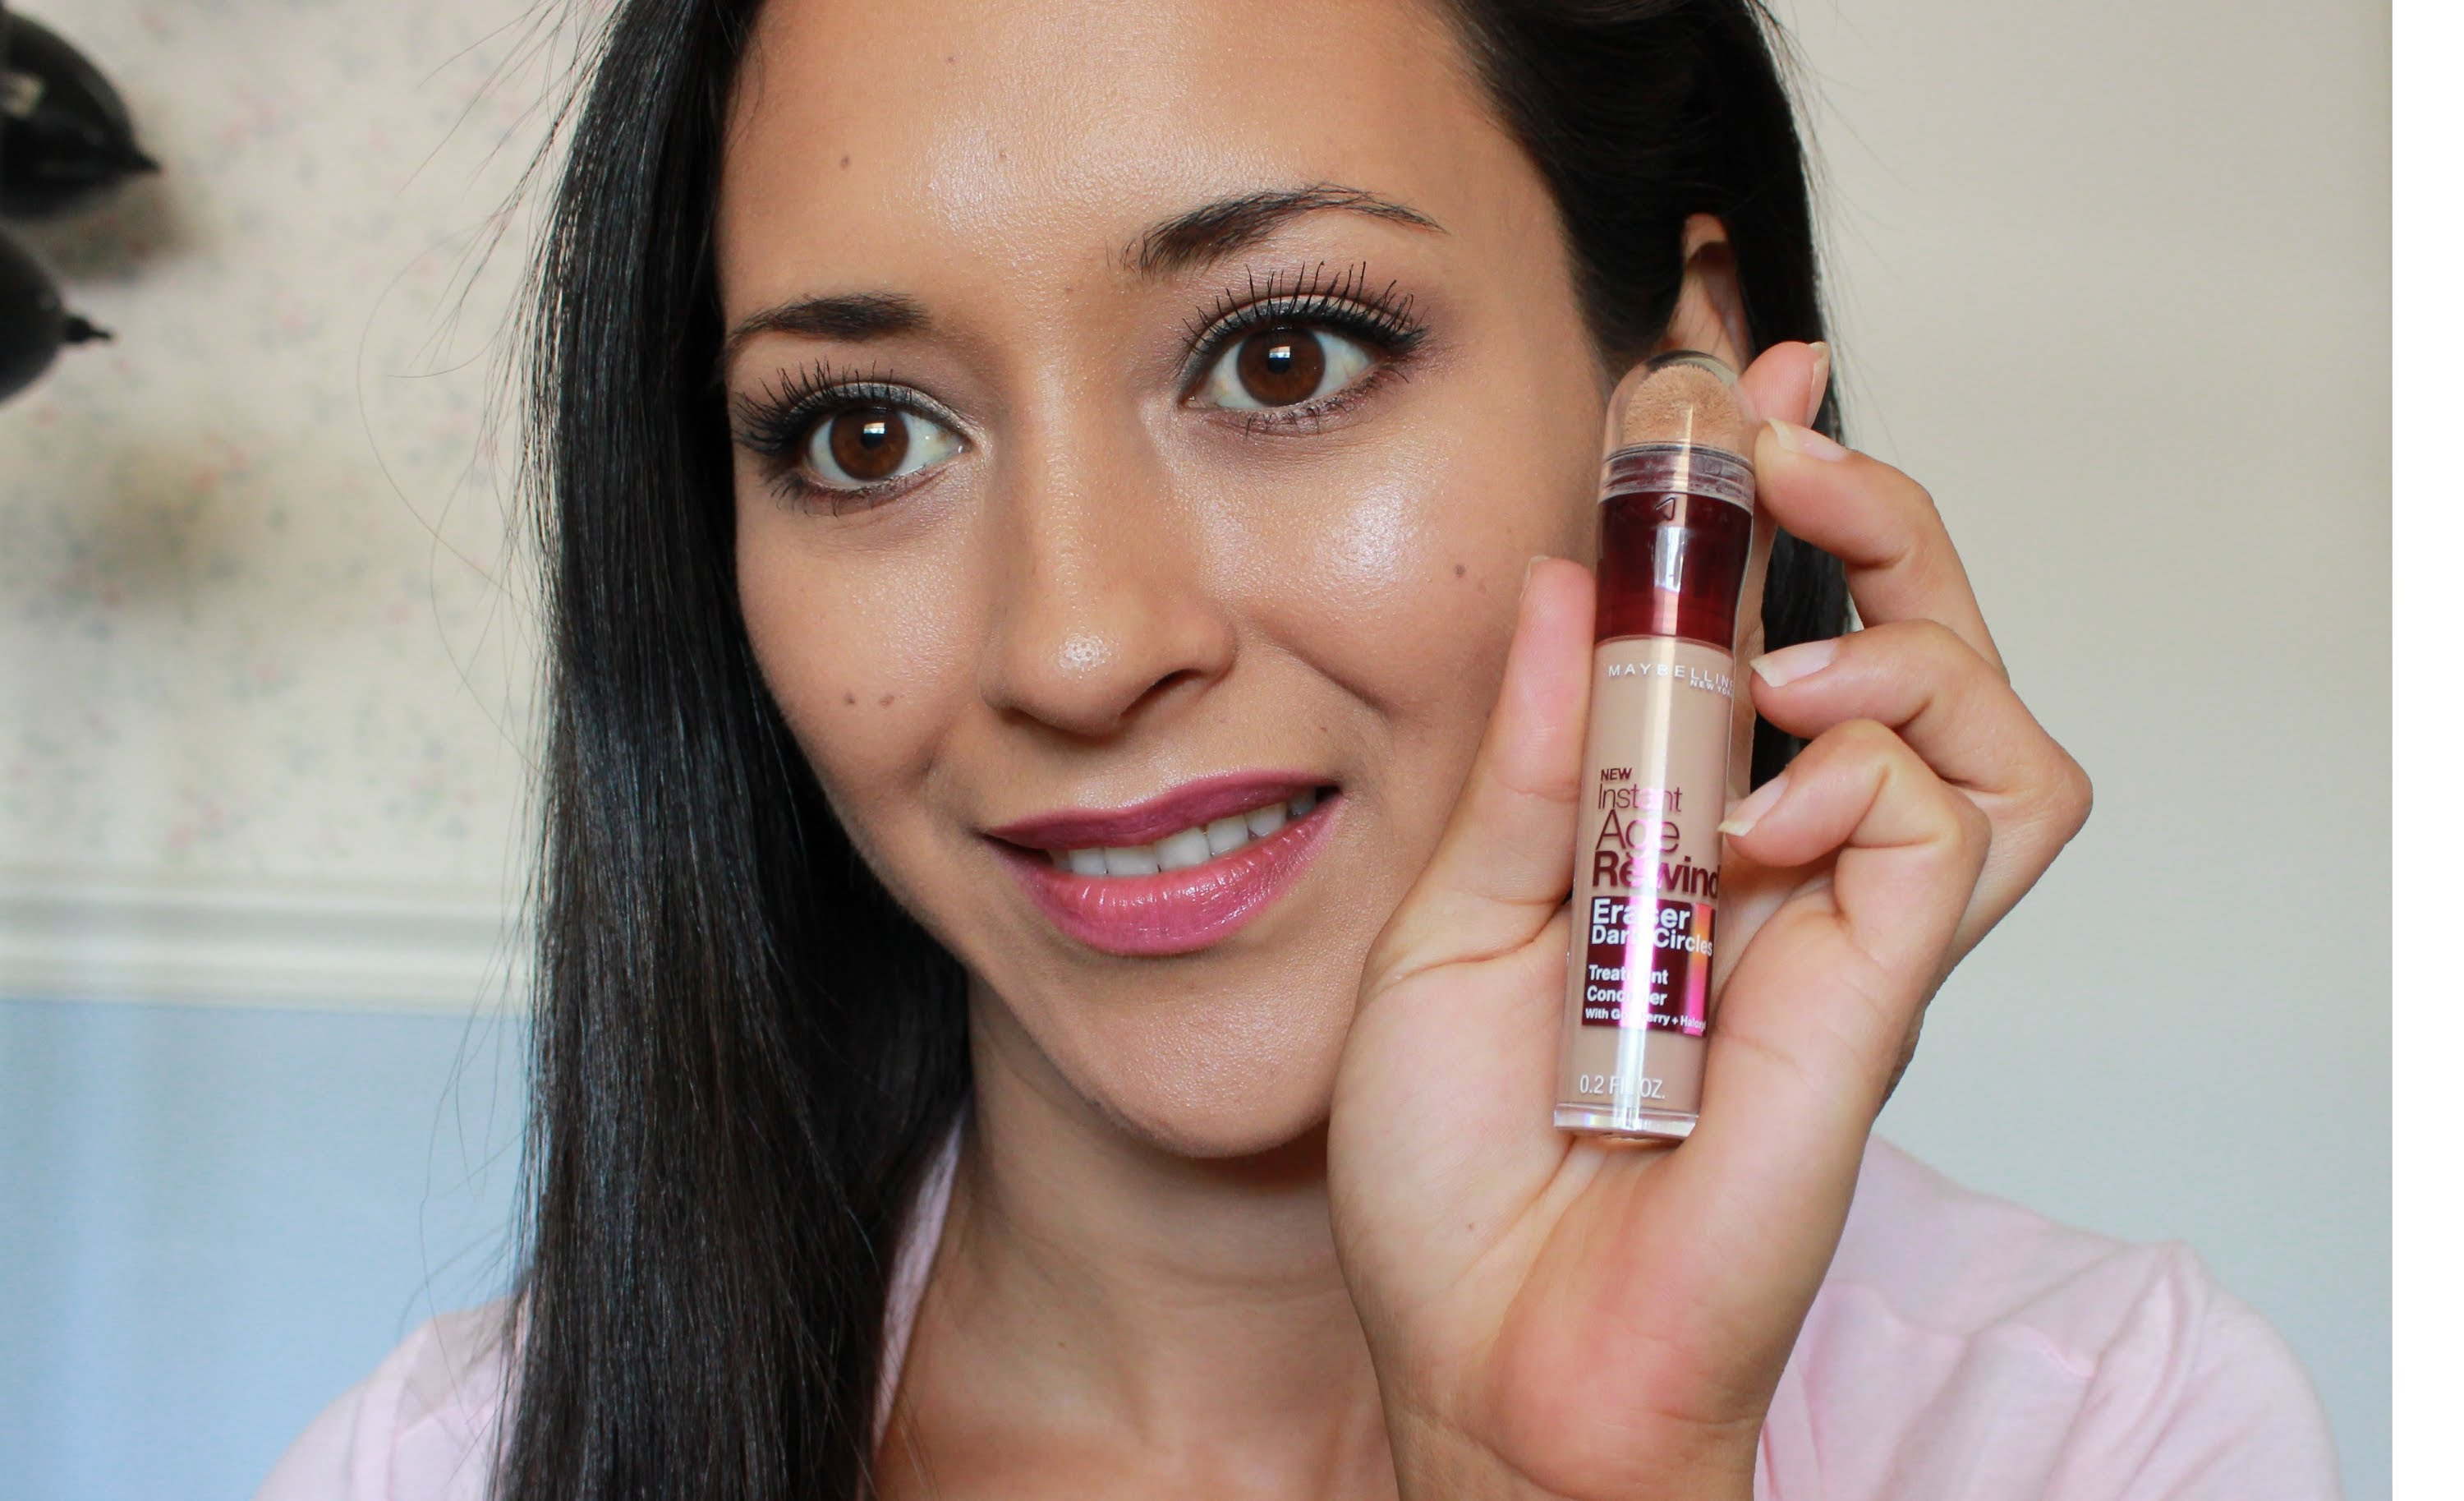 khach-hang-tin-dung-maybelline-age-rewind